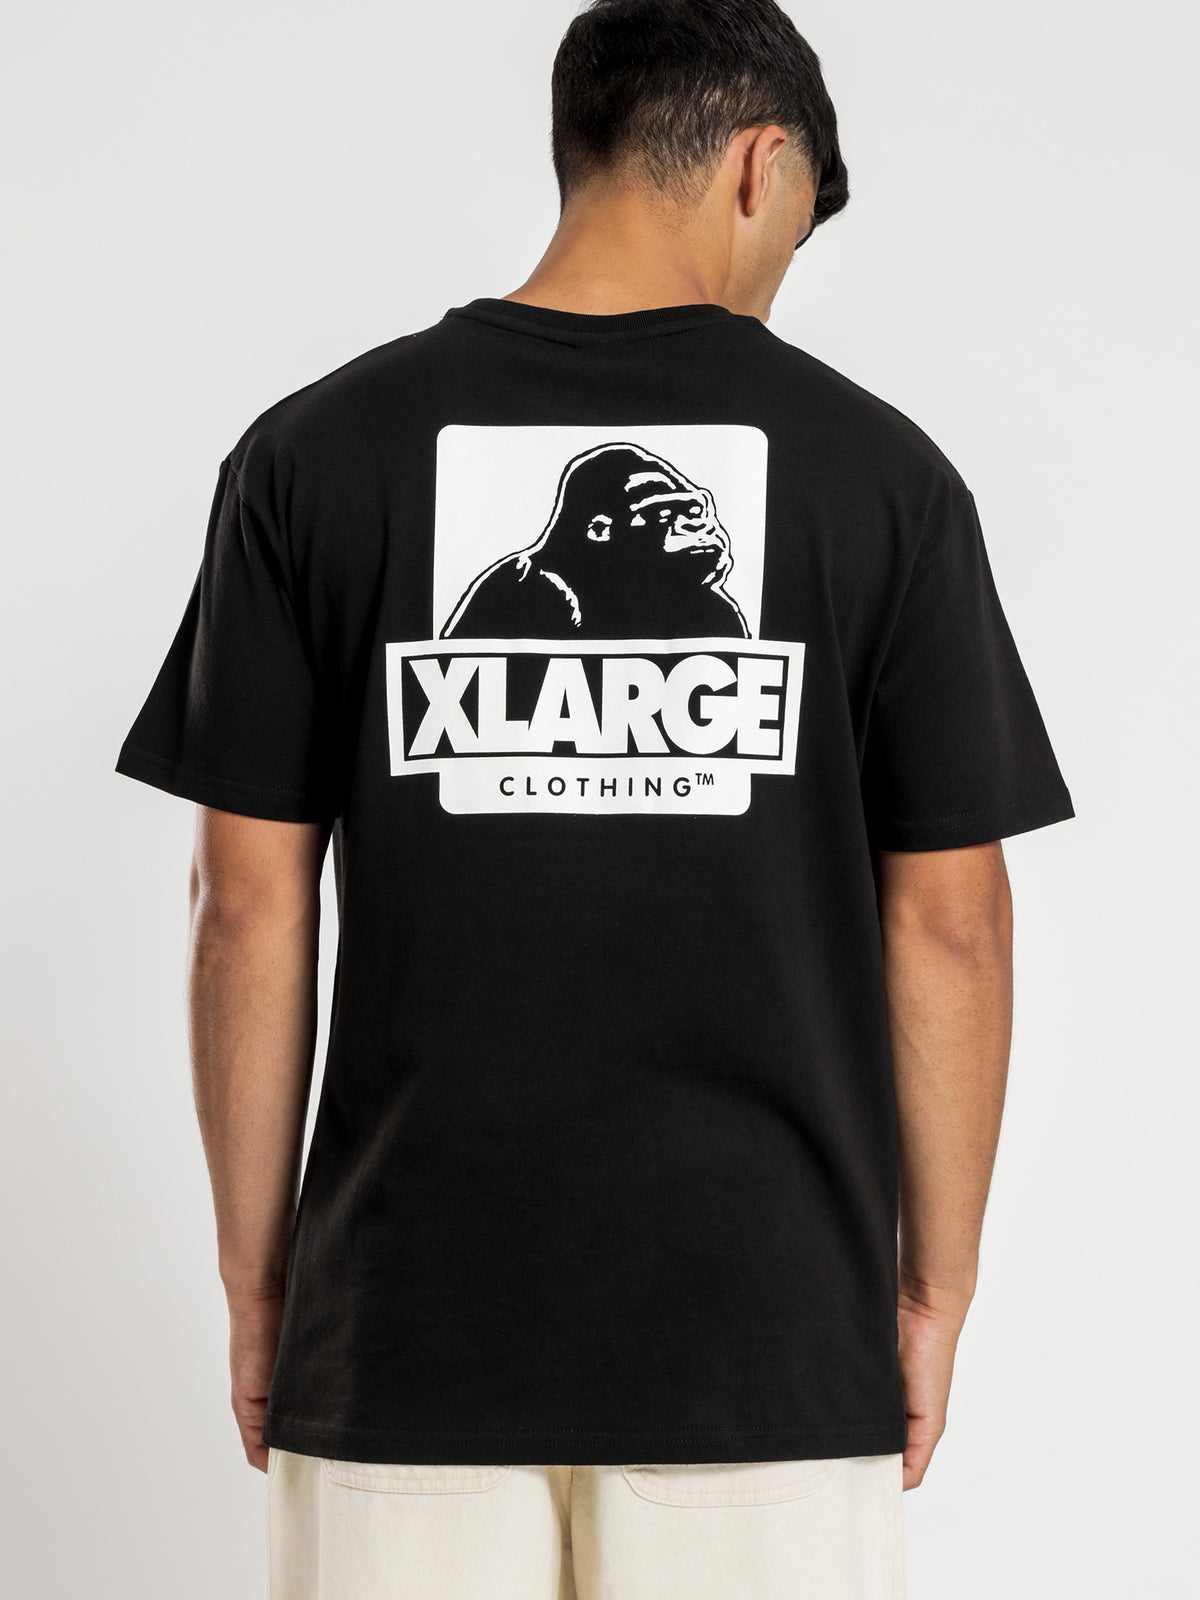 91 Text T-Shirt in Black